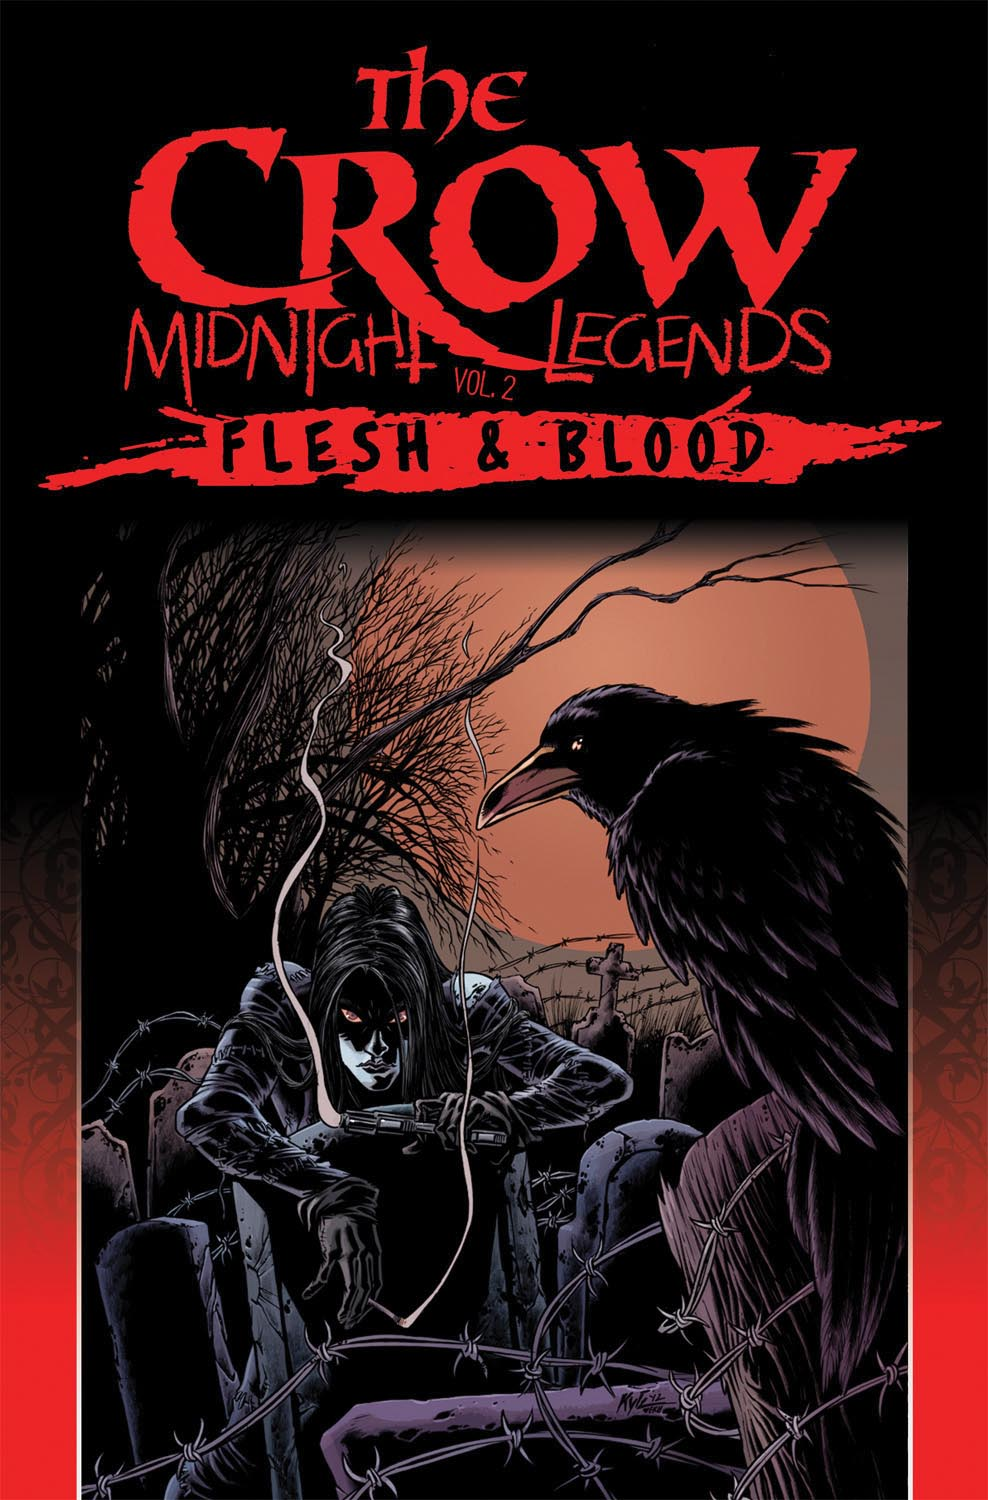 The Crow: Midnight Legends Vol. 2